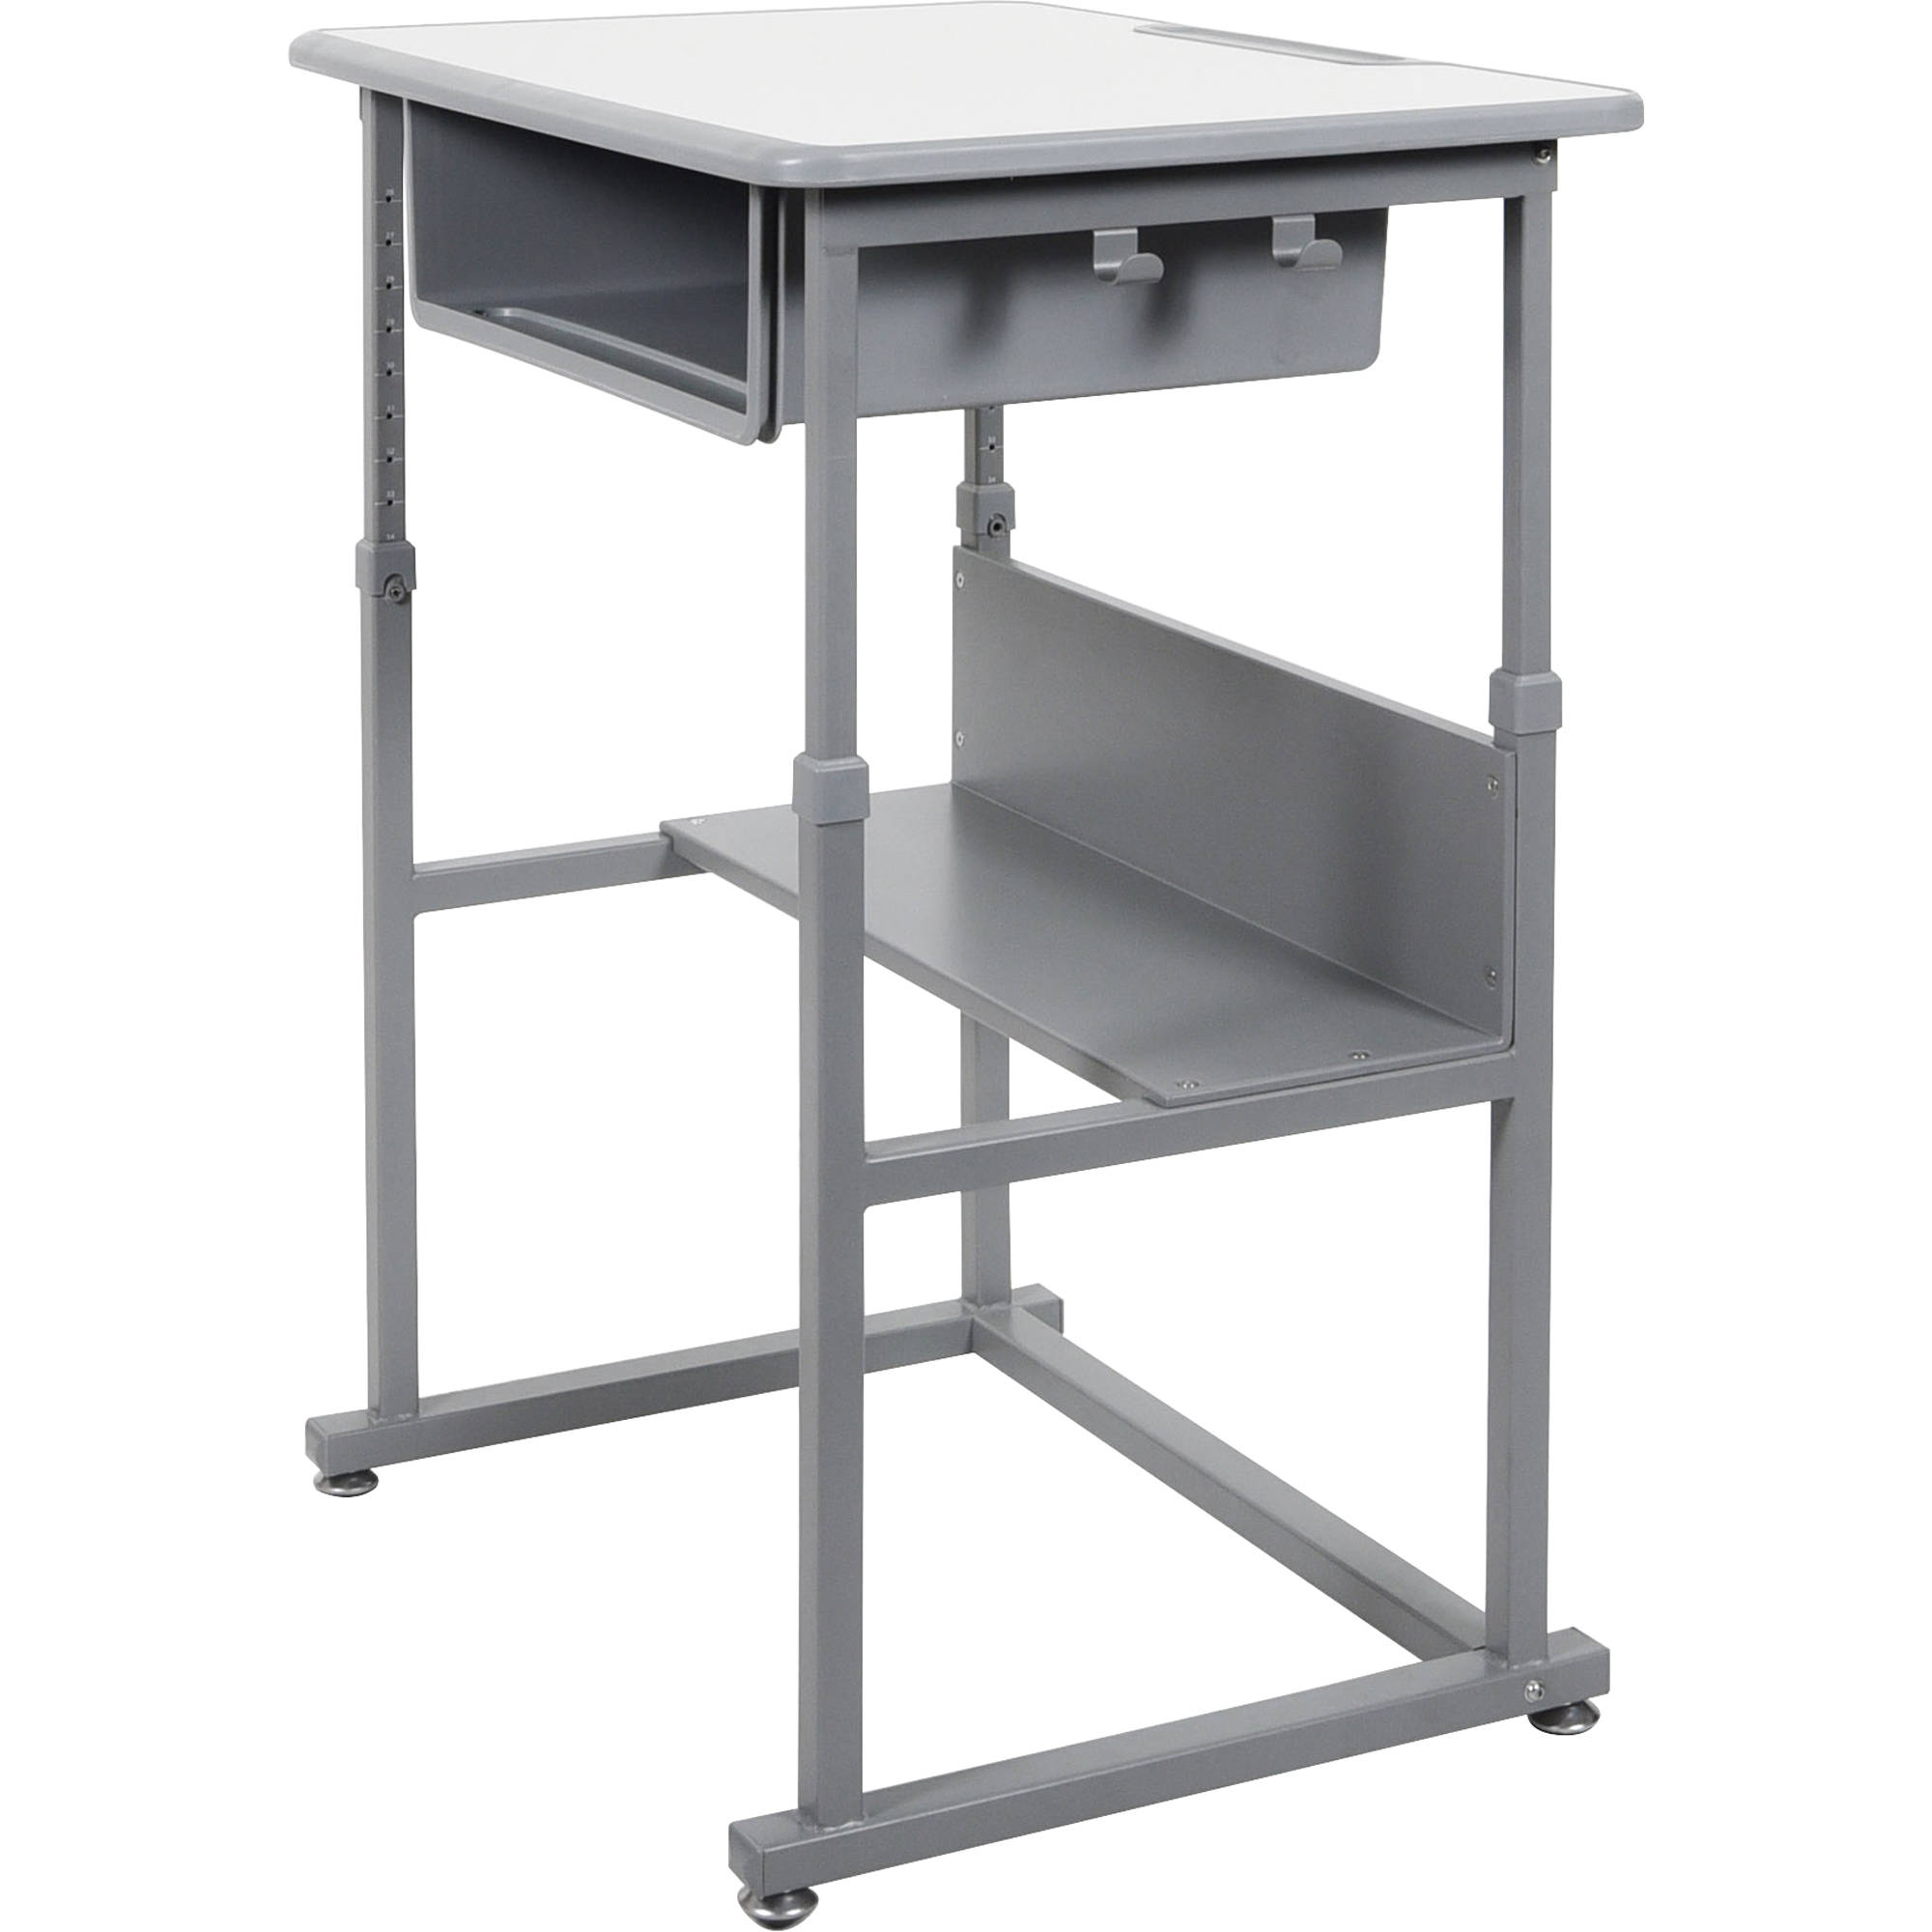 adjustable tabletop down artistry desk stand up sit height workstation ace standing and most motorized